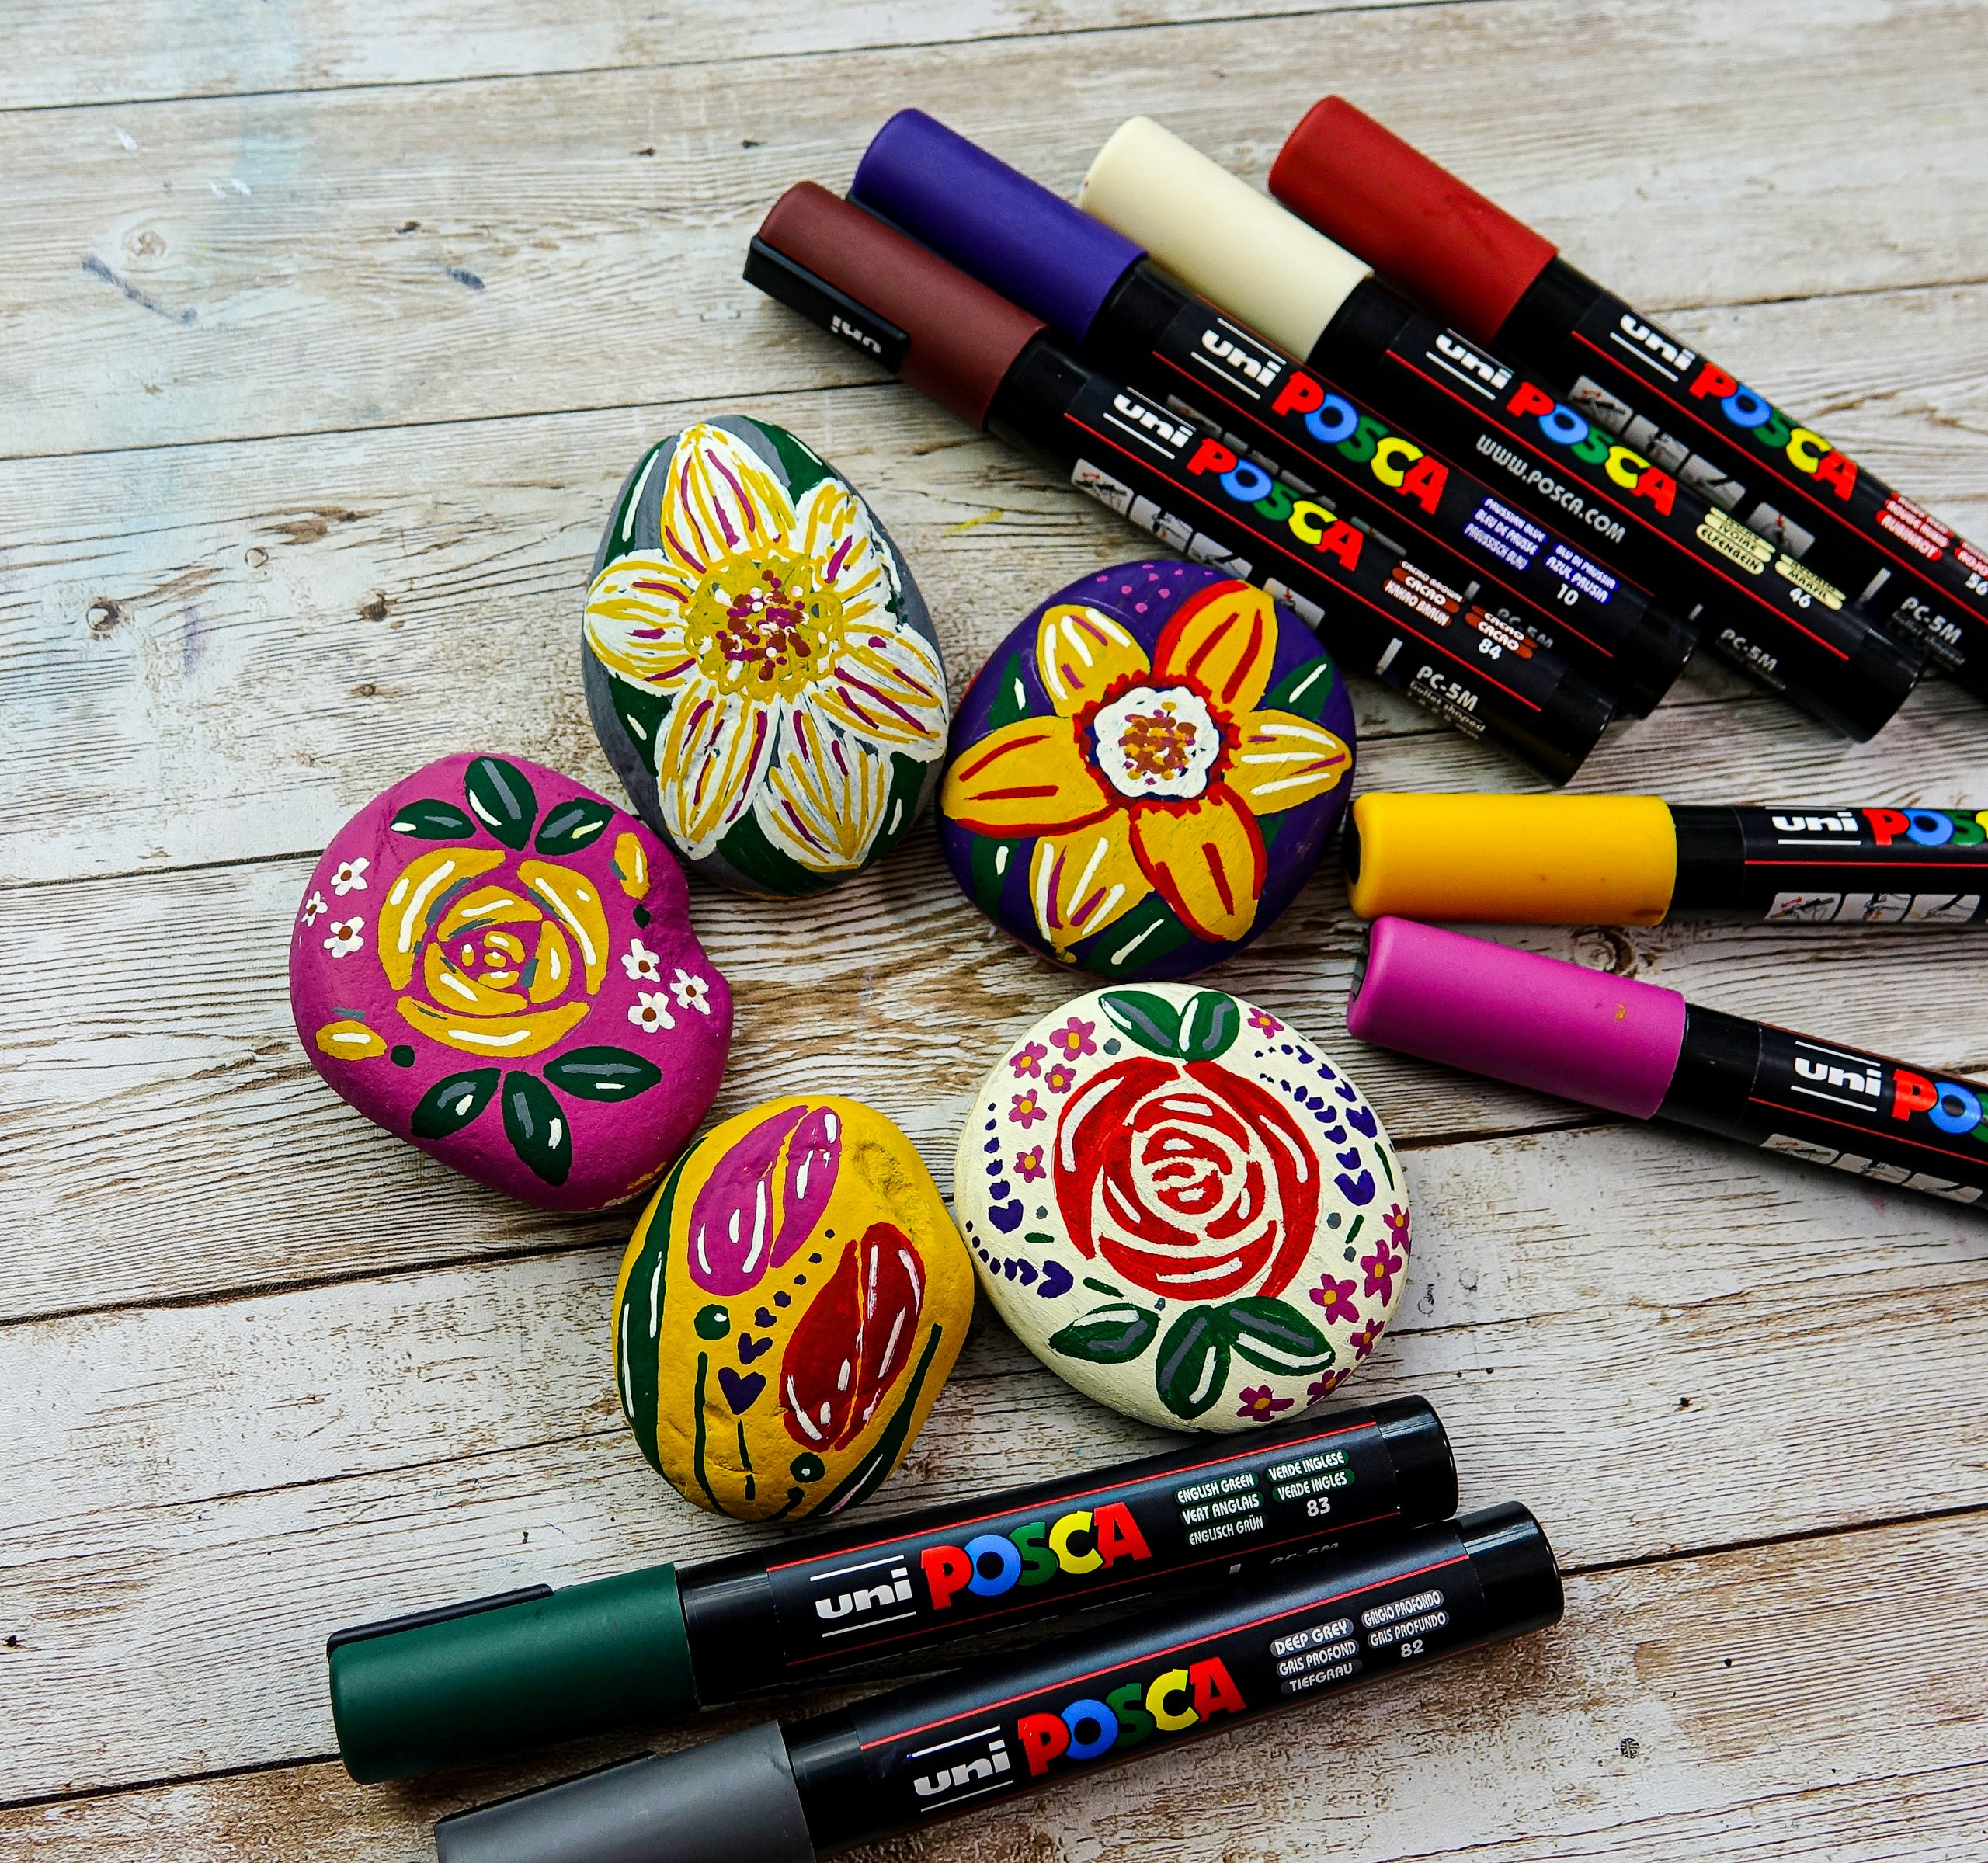 Decorate stones with spring flower designs in POSCA